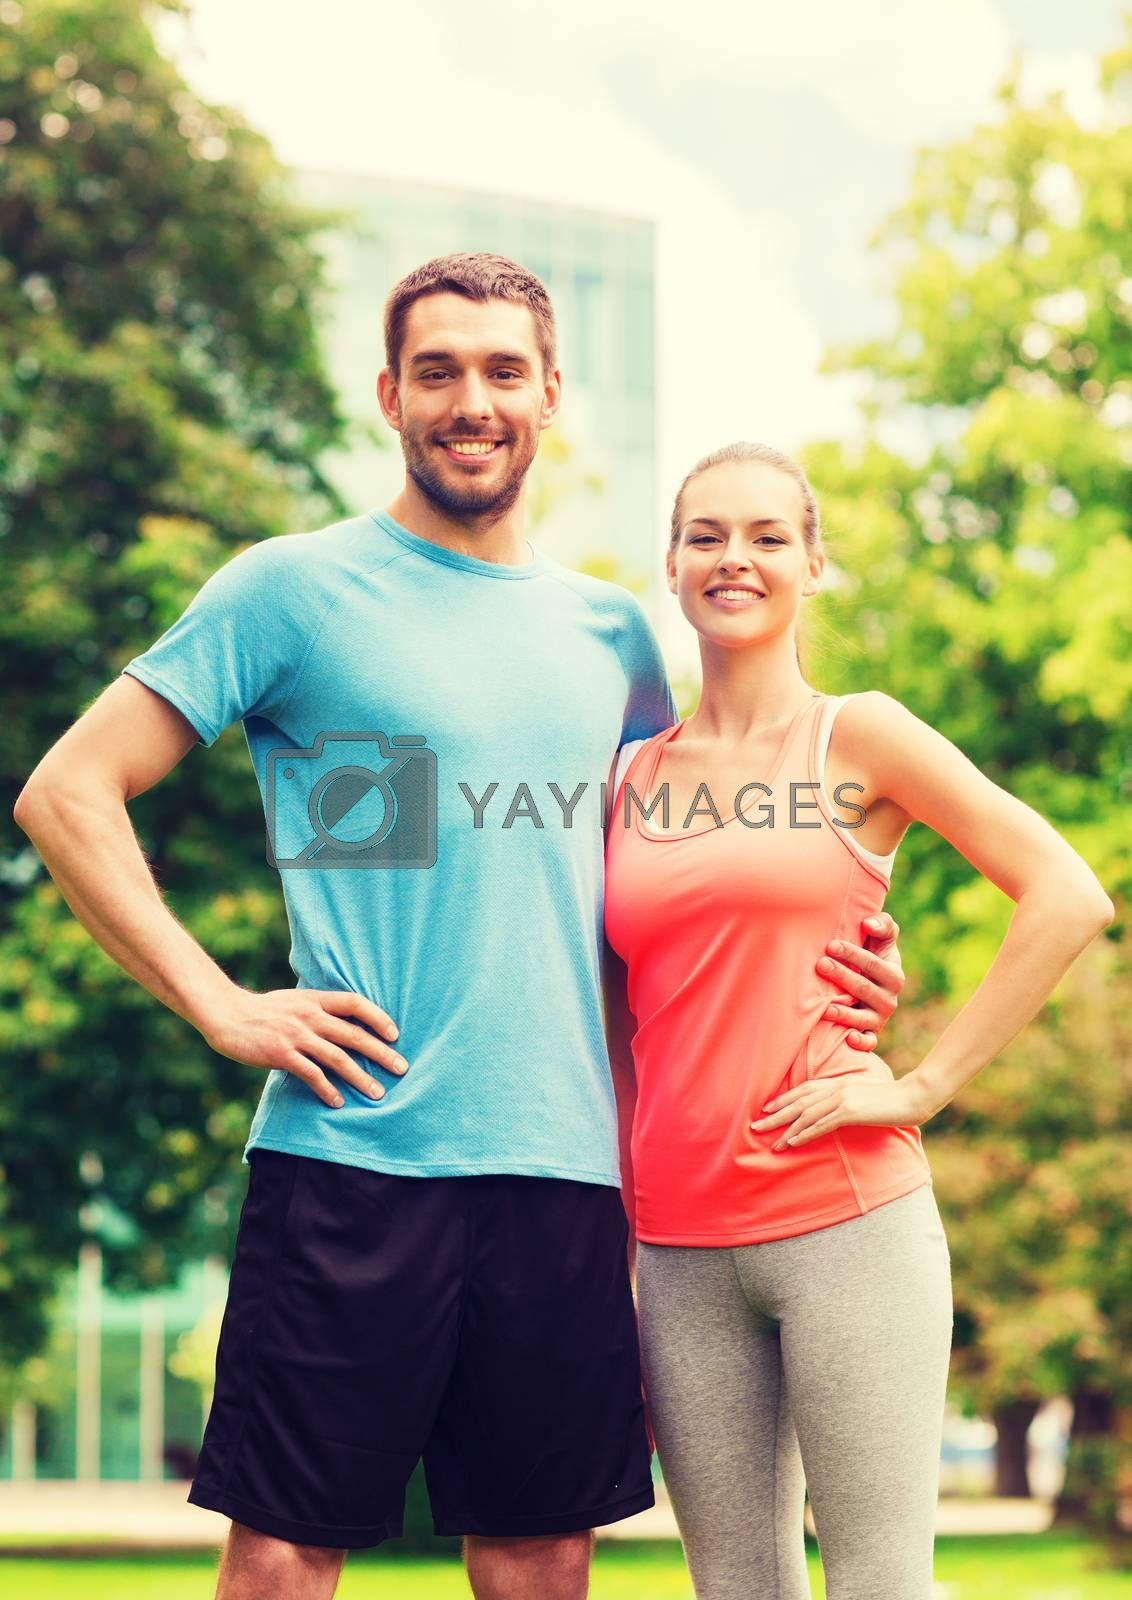 fitness, sport, friendship and lifestyle concept - smiling couple outdoors